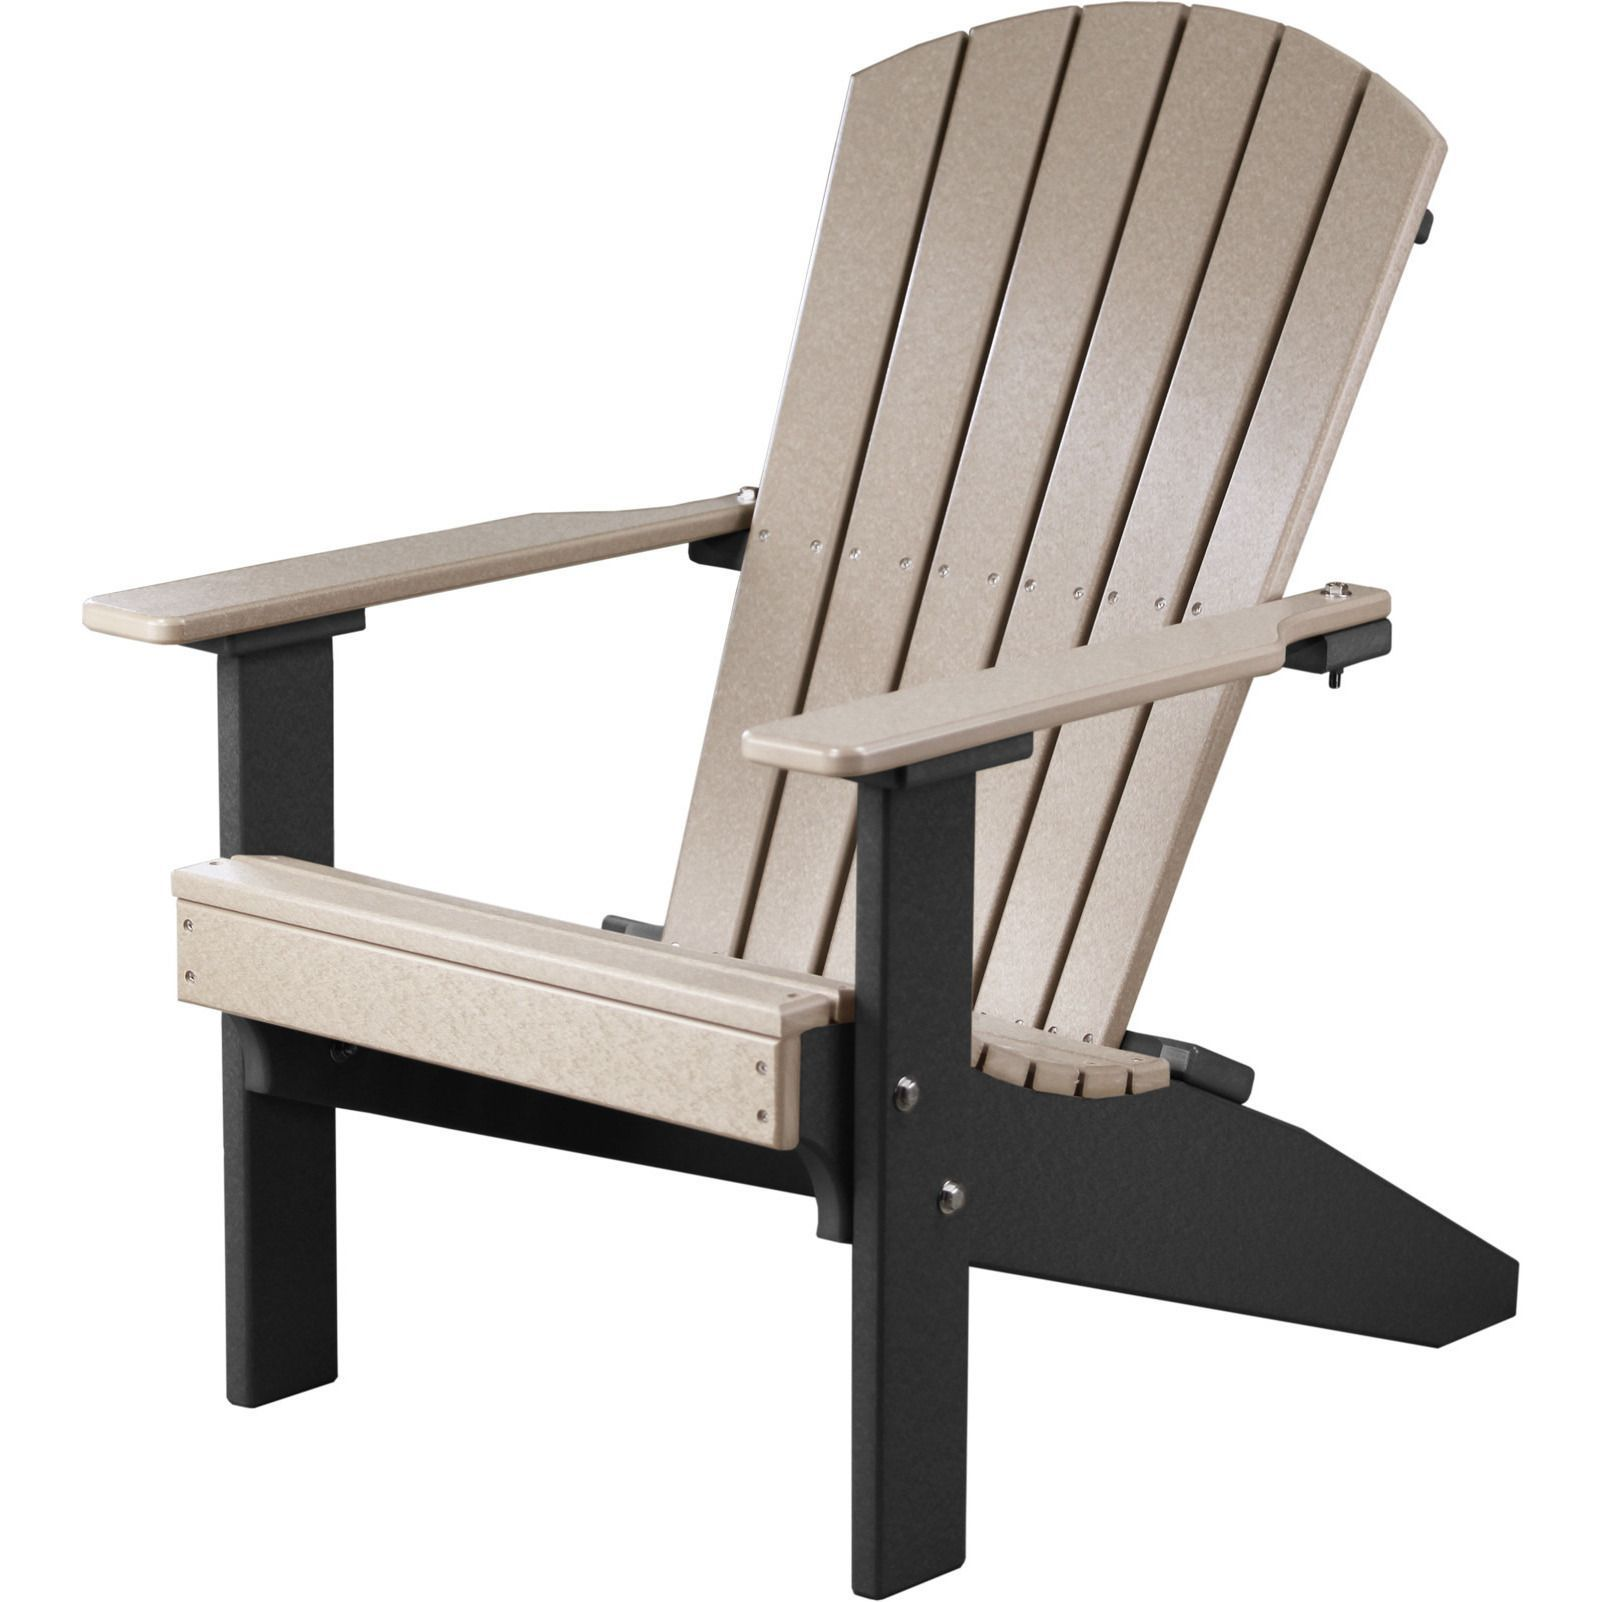 Luxcraft lakeside recycled plastic adirondack chair